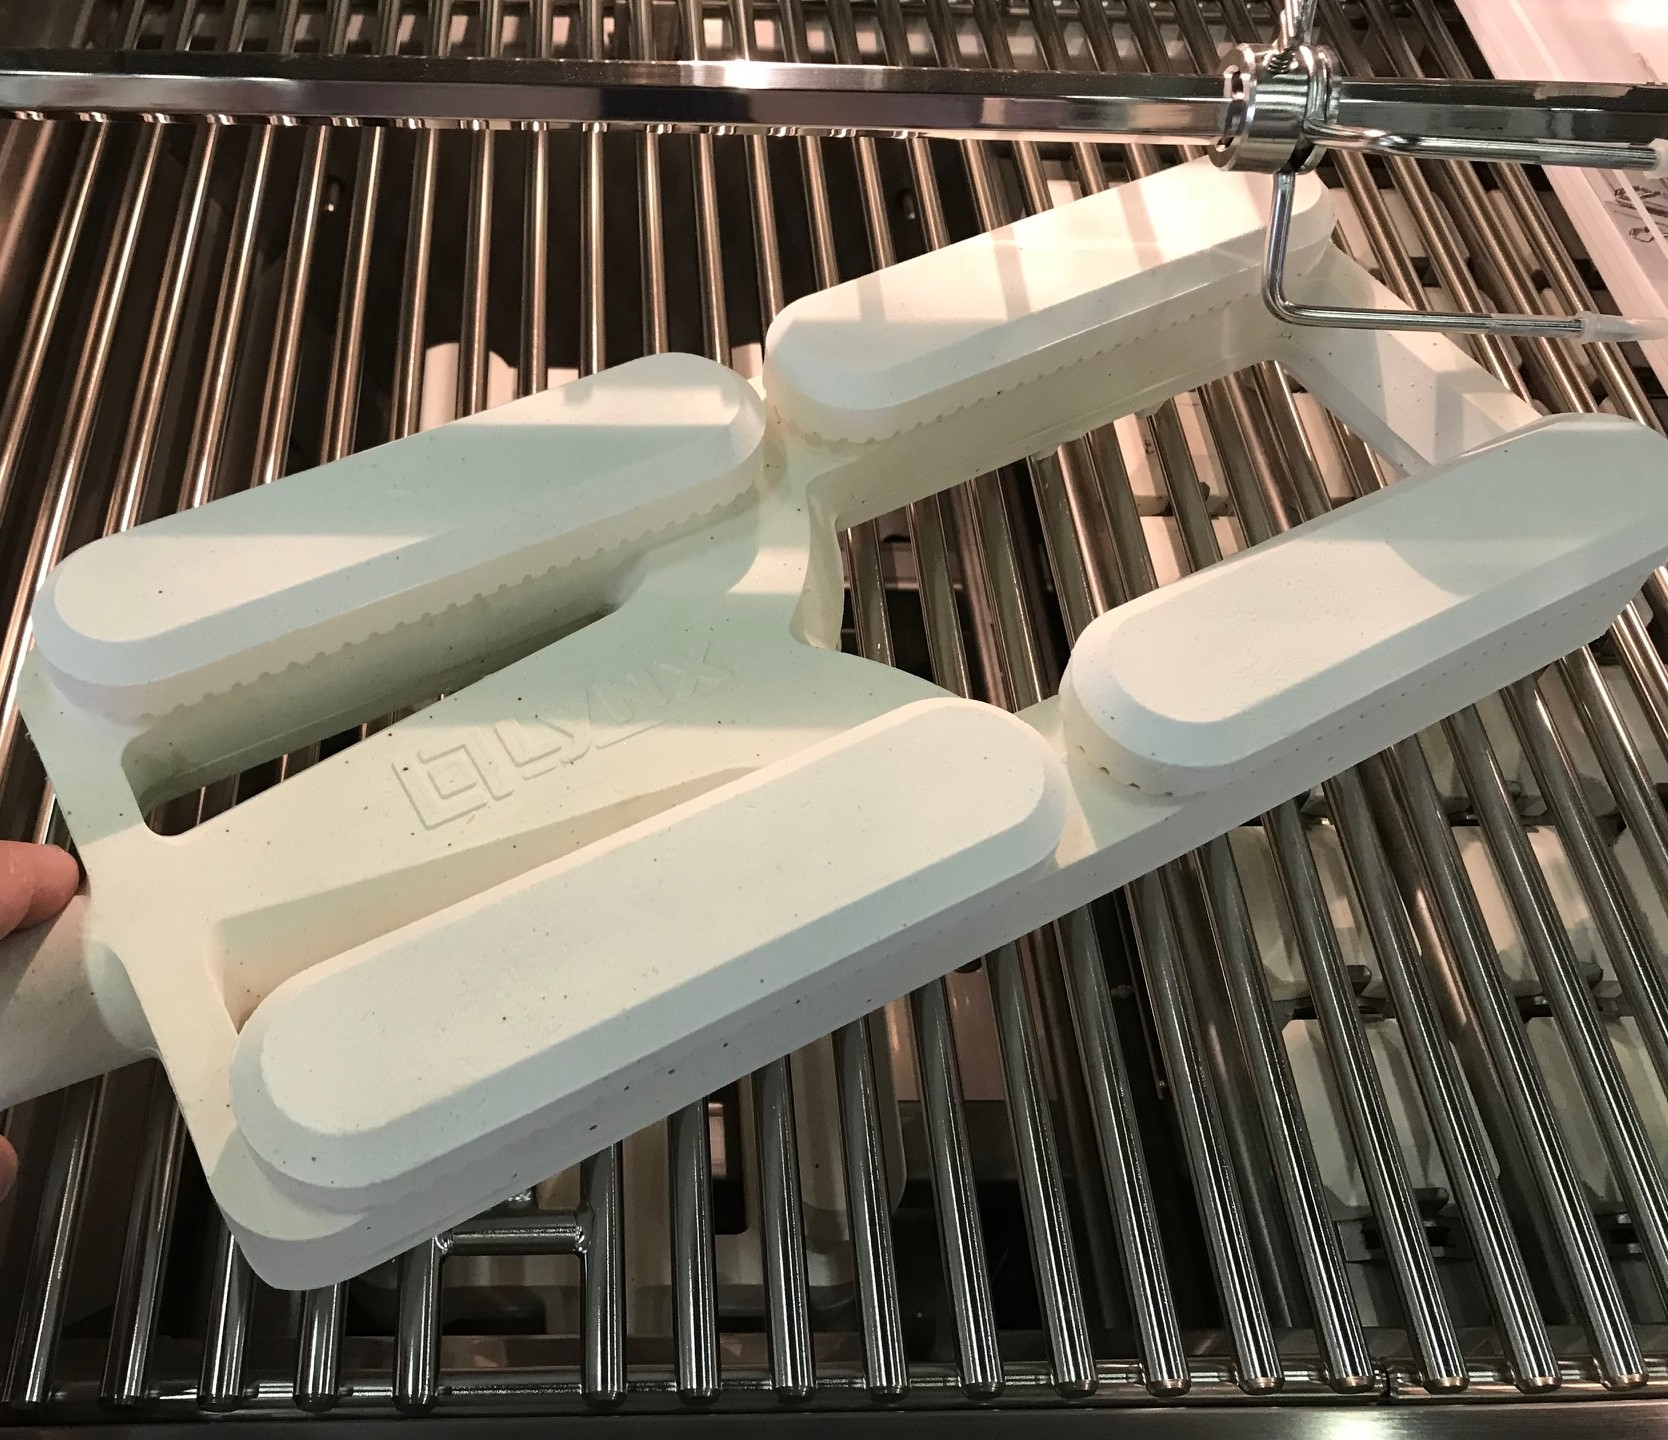 2018 Lynx Grills Review: New Ceramic Burners